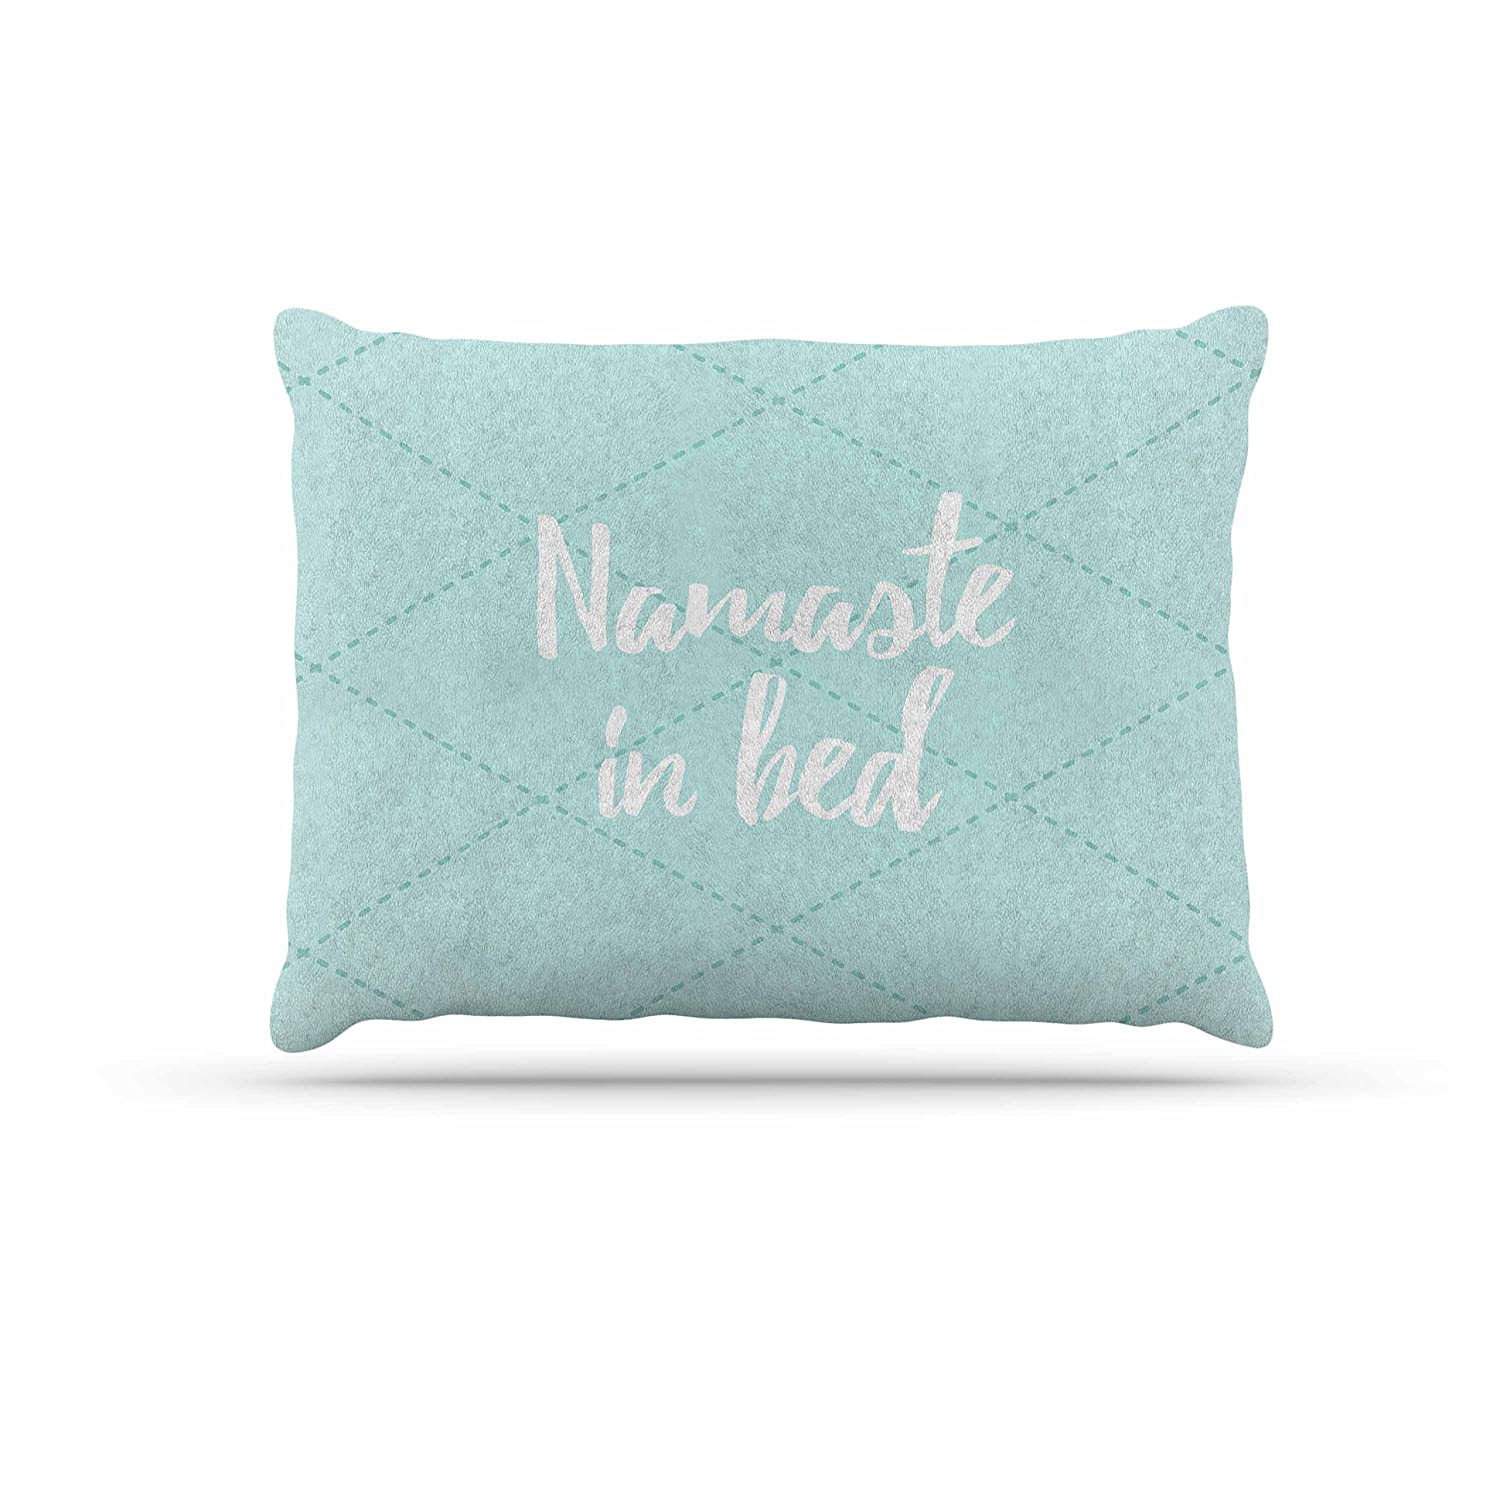 KESS InHouse Kess Original Namaste in Bed Teal bluee White Dog Bed, 30  x 40